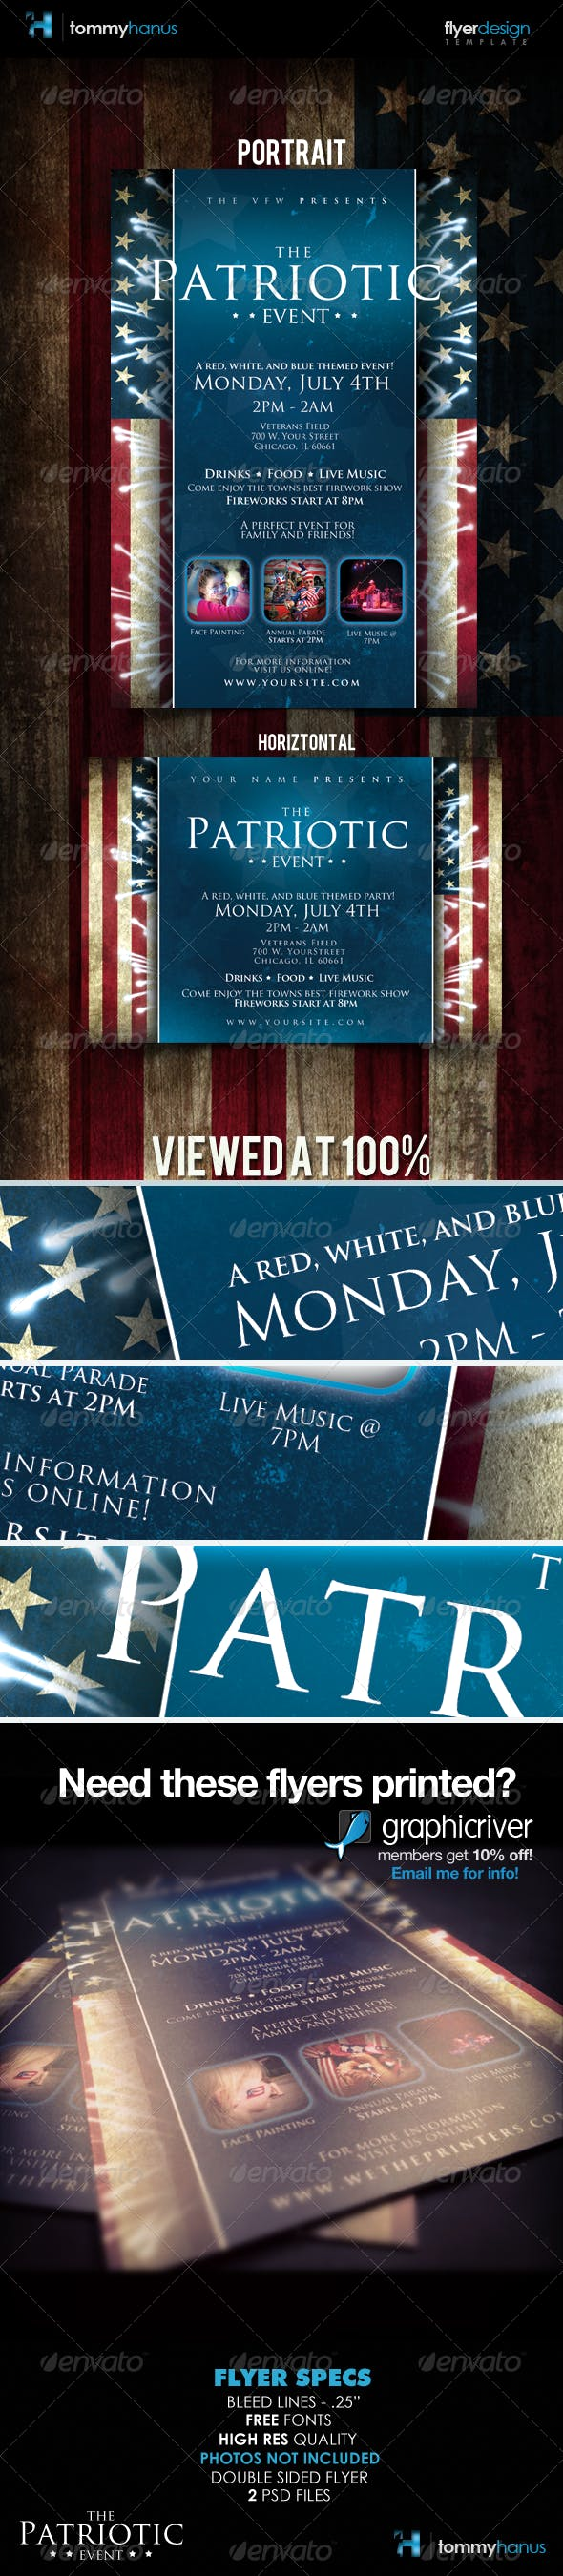 patriotic 4th of july flyer template by tommyhanus graphicriver